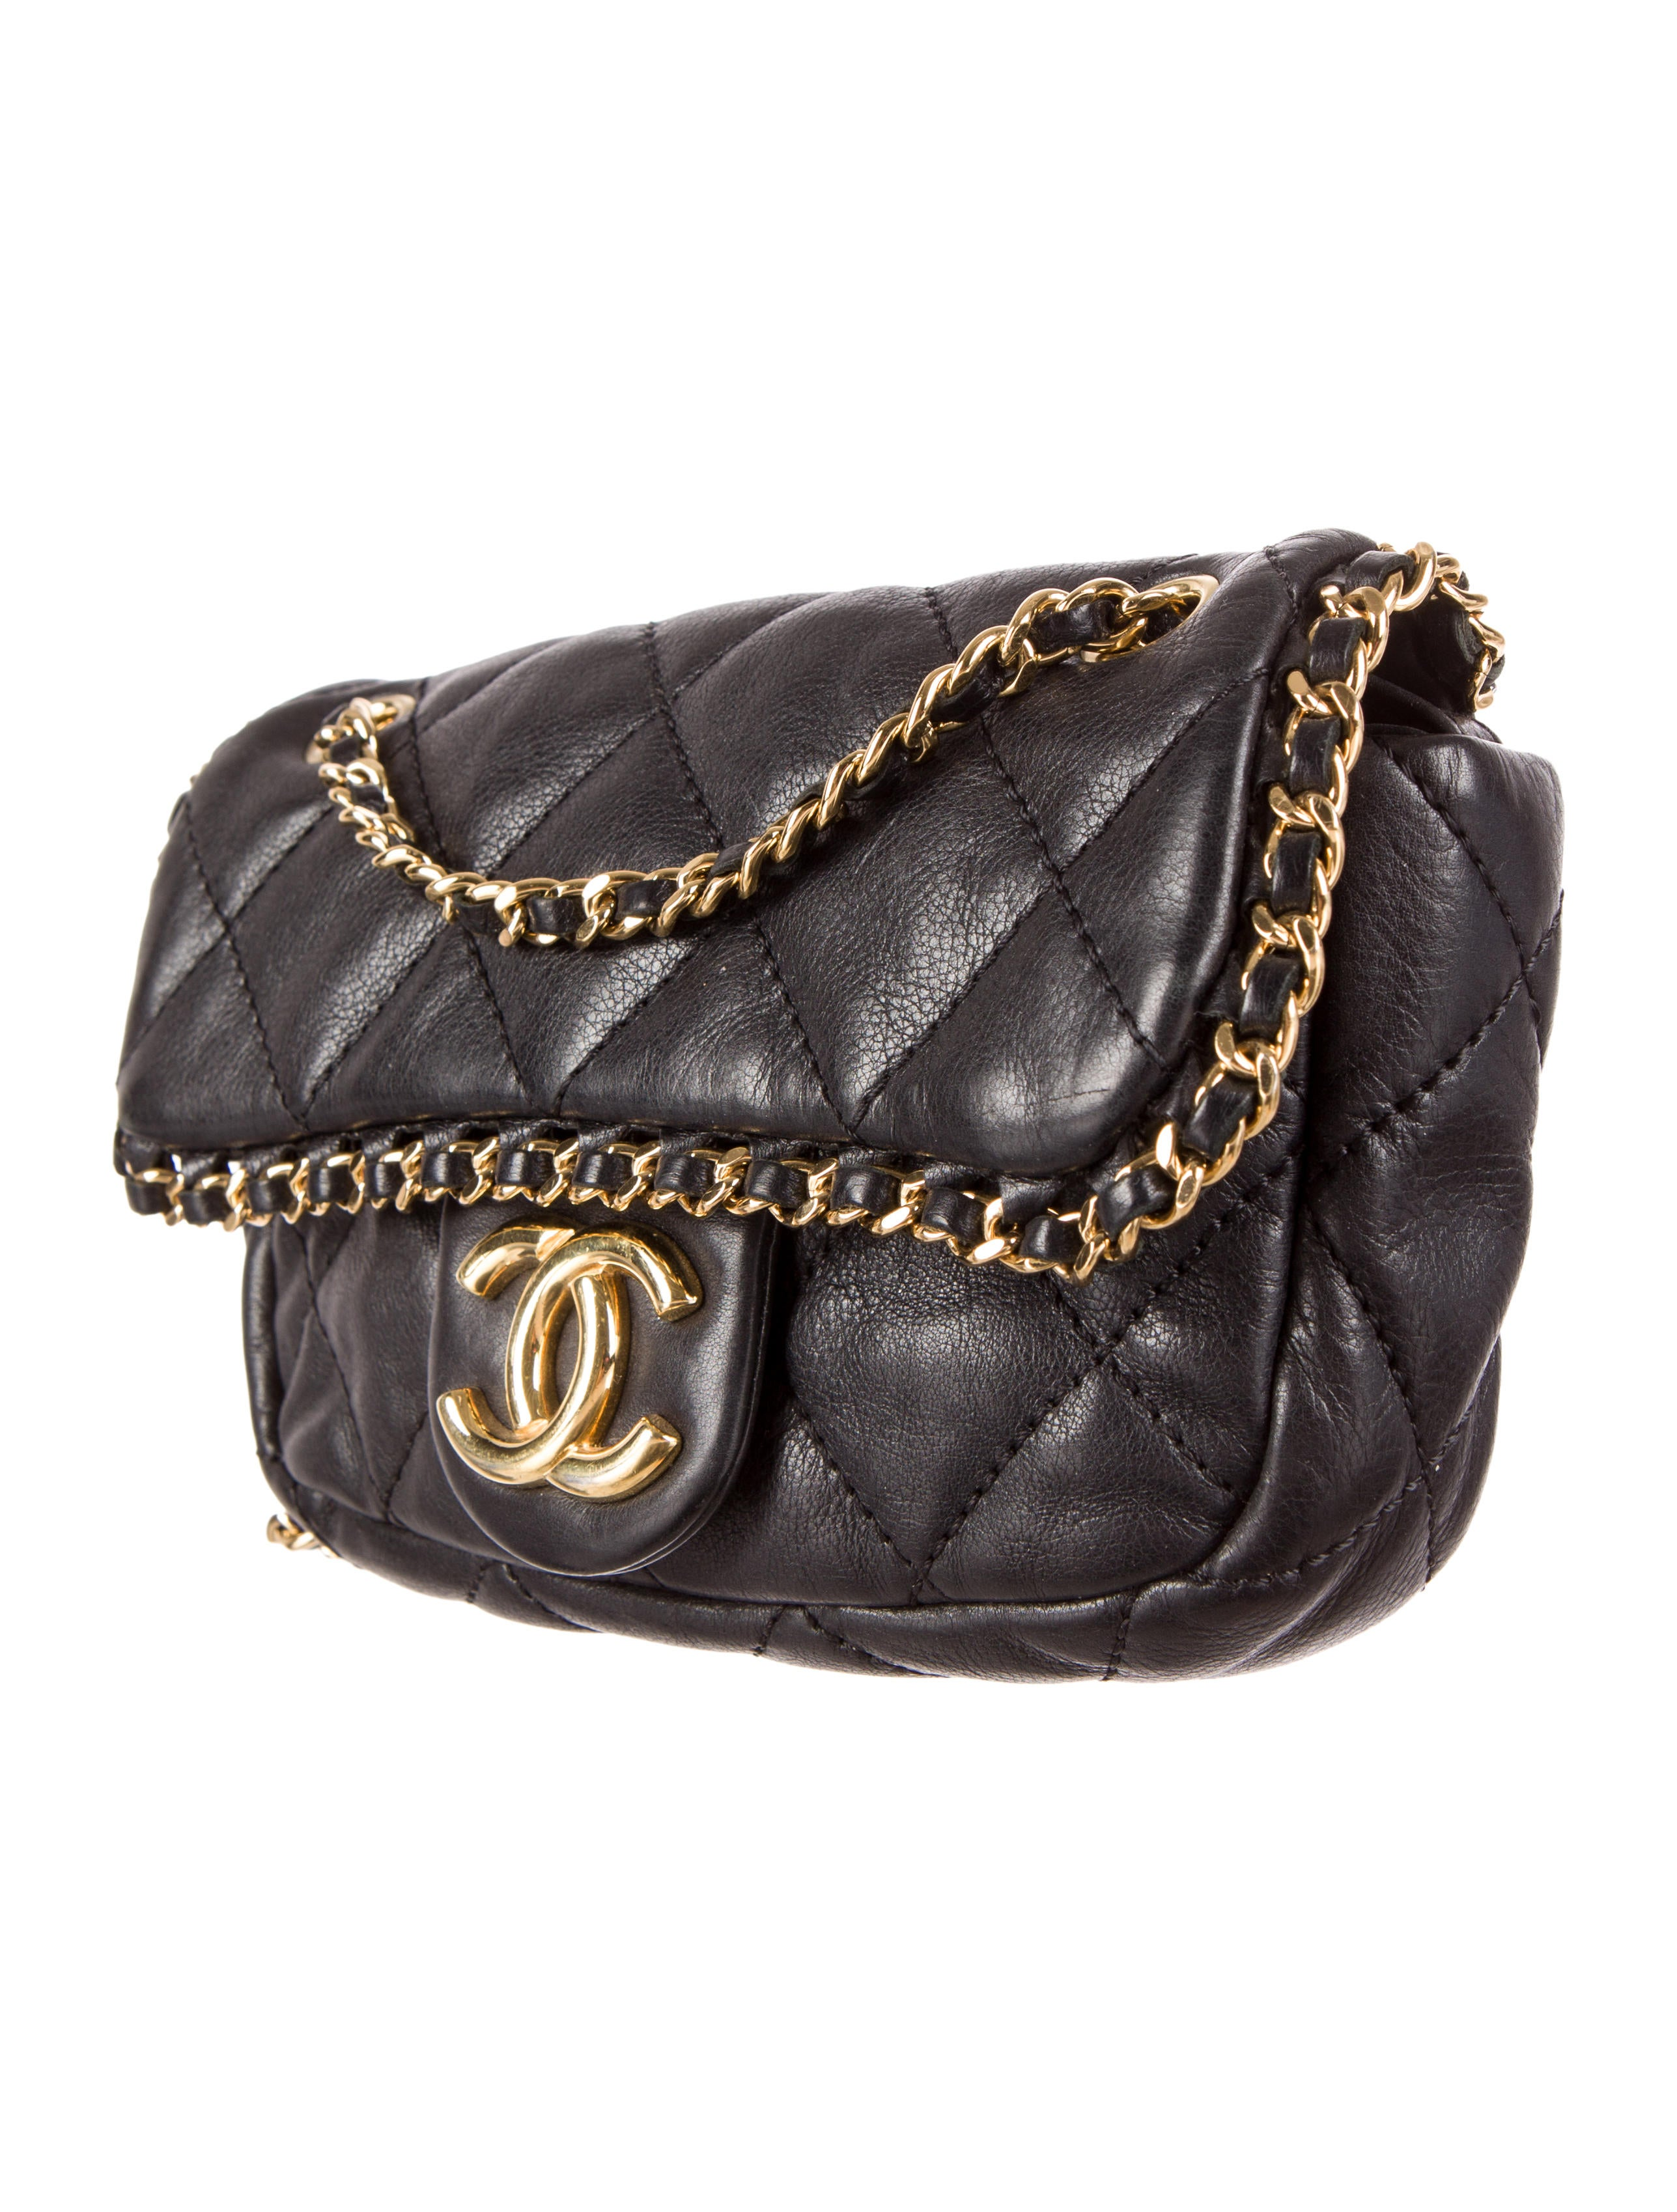 41e7ca7beaec Chanel Small Flap Bag Chain Length | Stanford Center for Opportunity ...